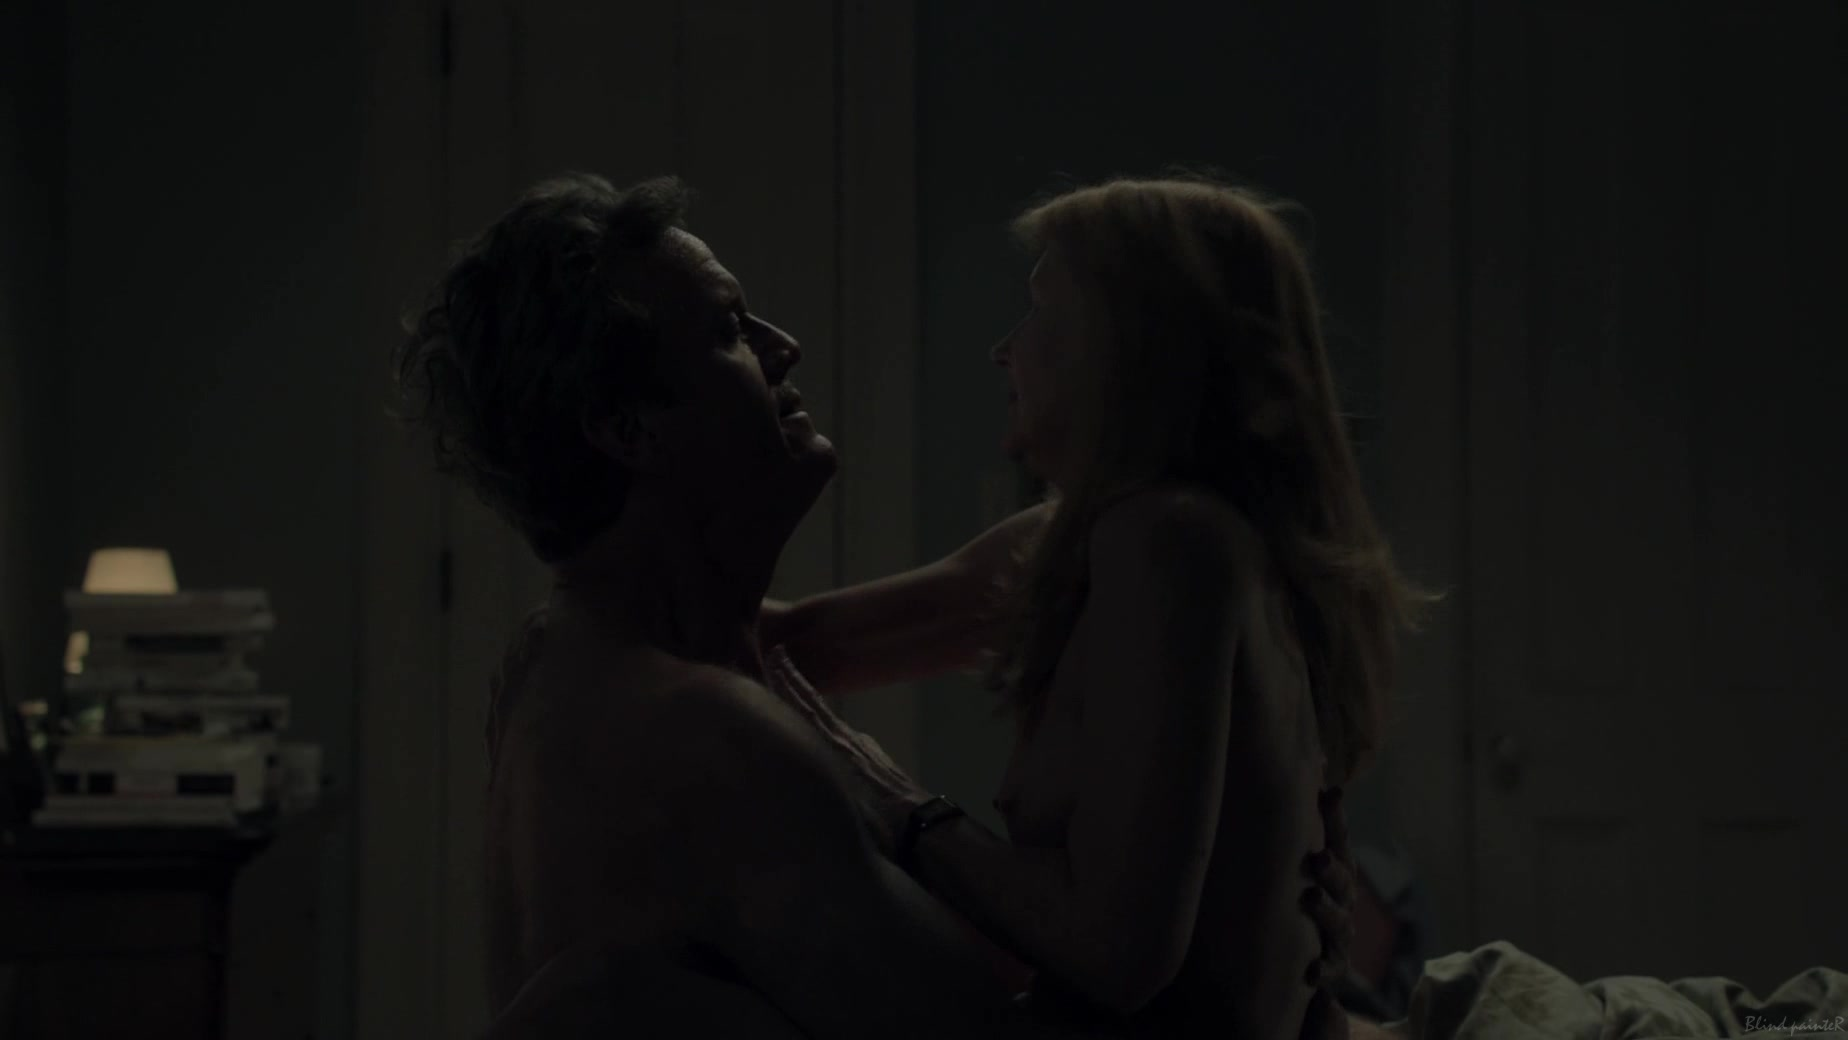 Patricia clarkson nude scenes remarkable, rather